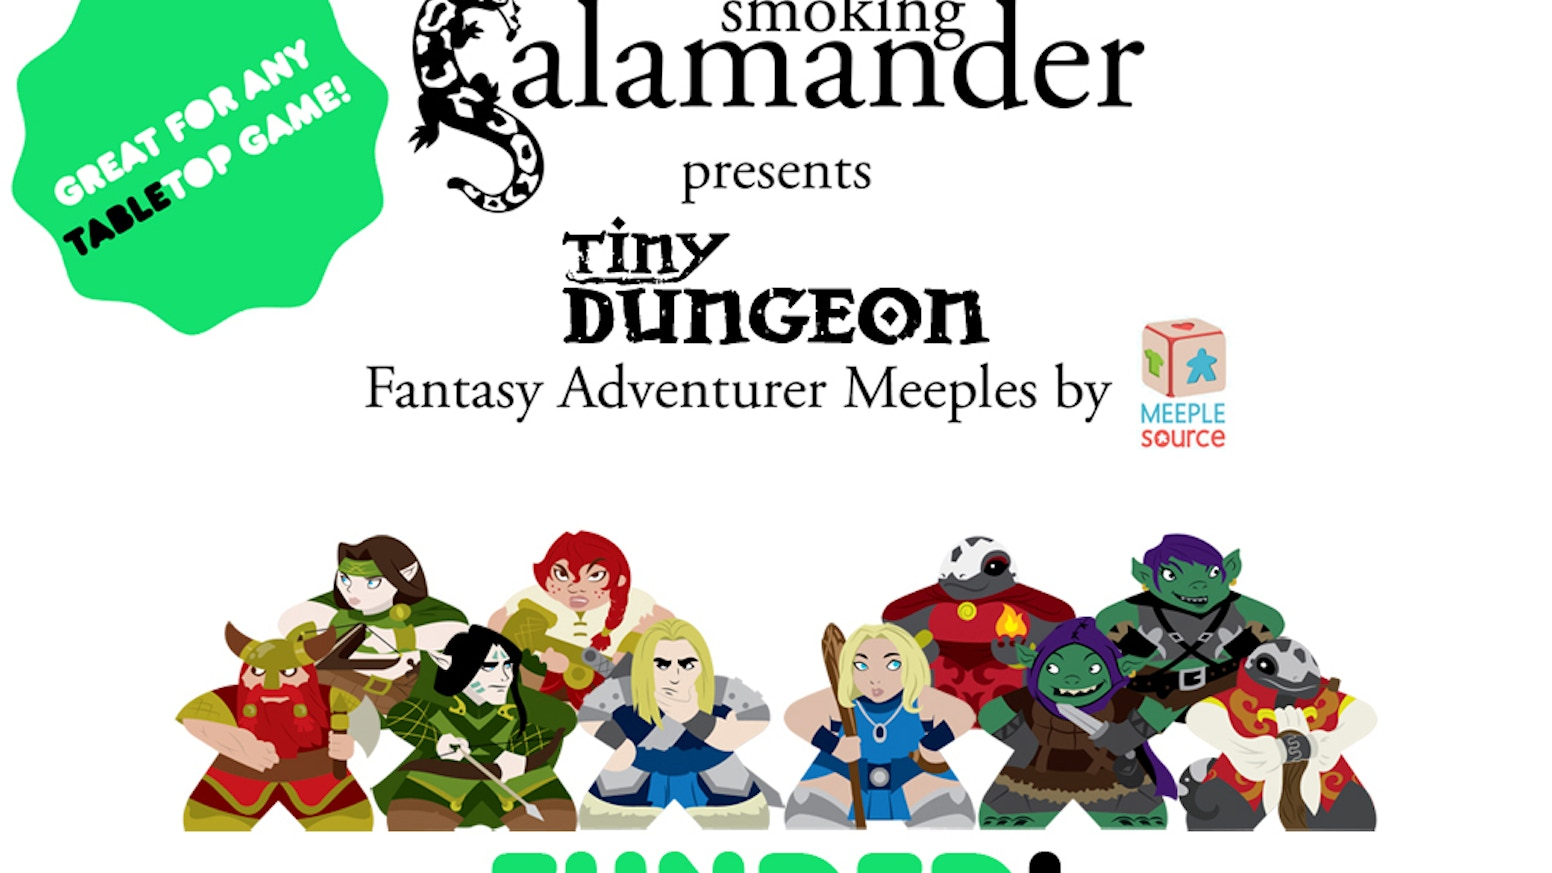 Smoking Salamander has teamed up with the Meeple experts at MeepleSource to produce a line of detailed fantasy Adventurer Meeples!